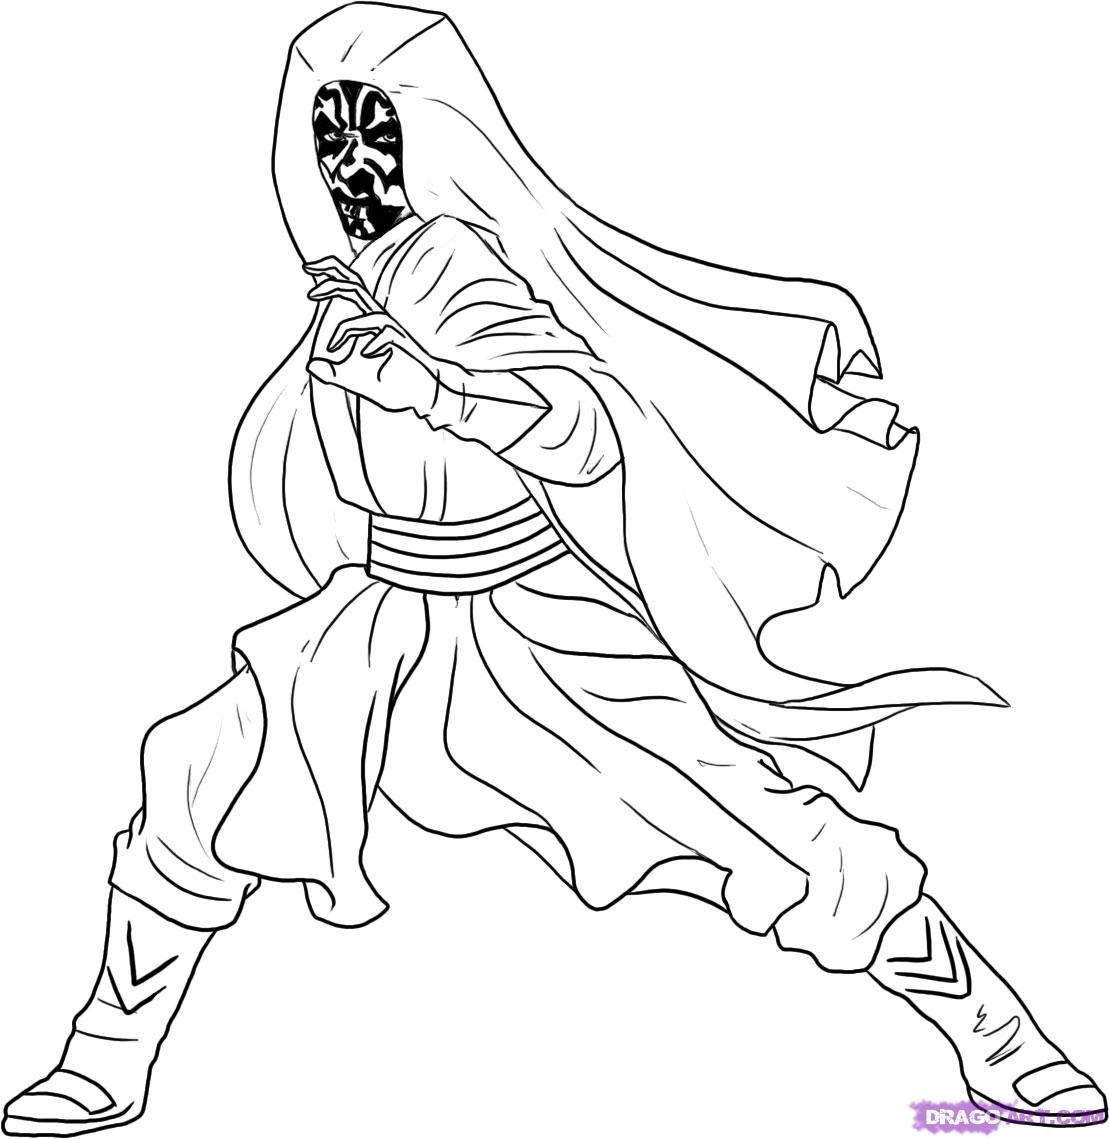 darth maul coloring page star wars coloring pages darth maul at getcoloringscom coloring maul darth page